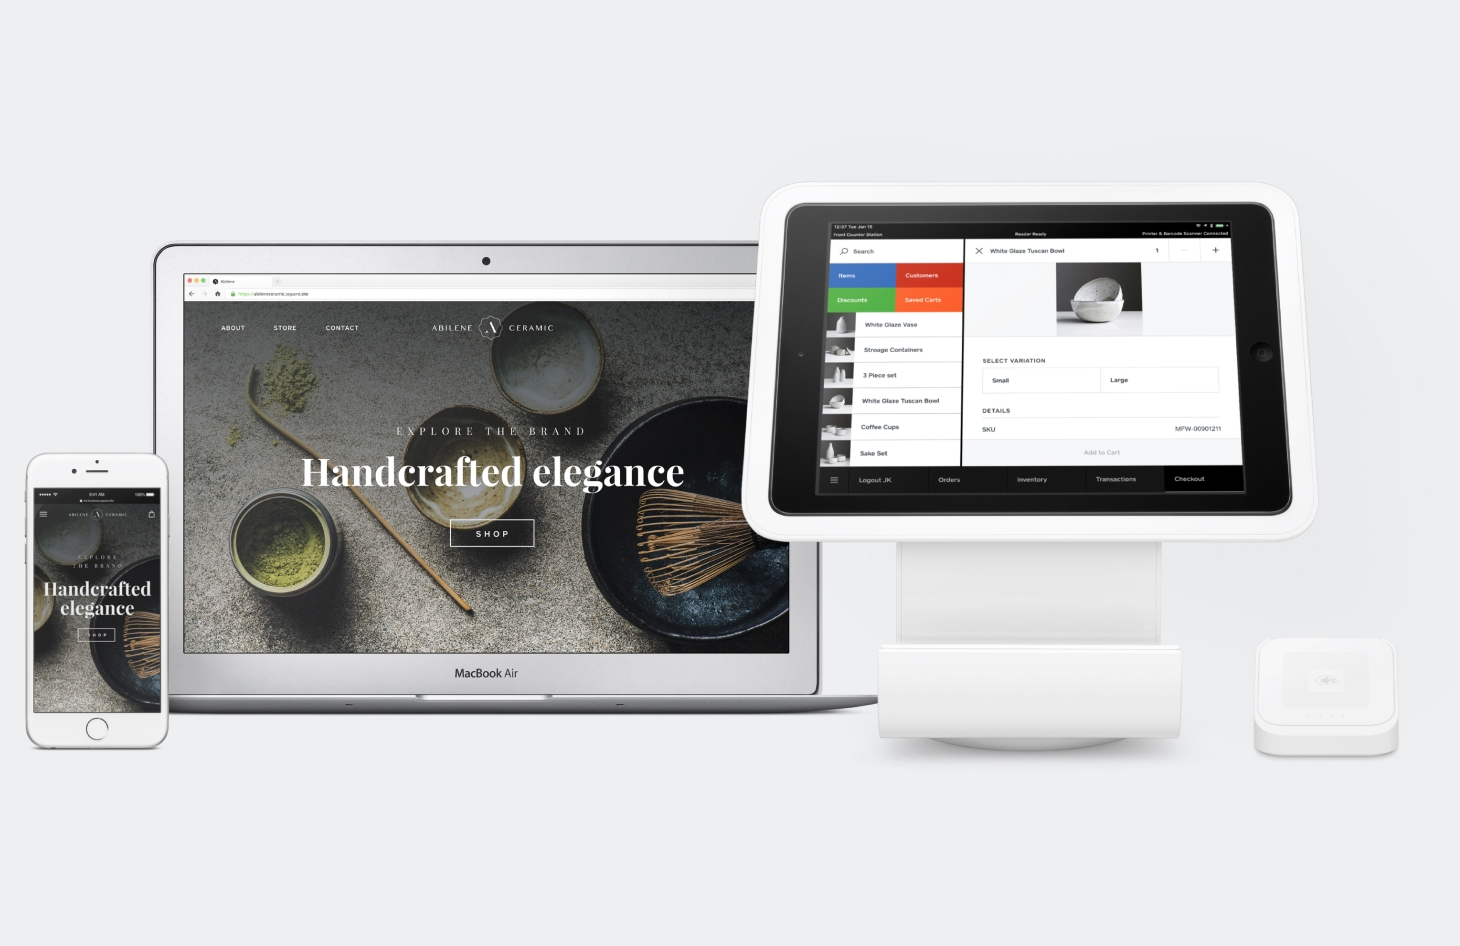 Square leverages Weebly acquisition to bridge offline and